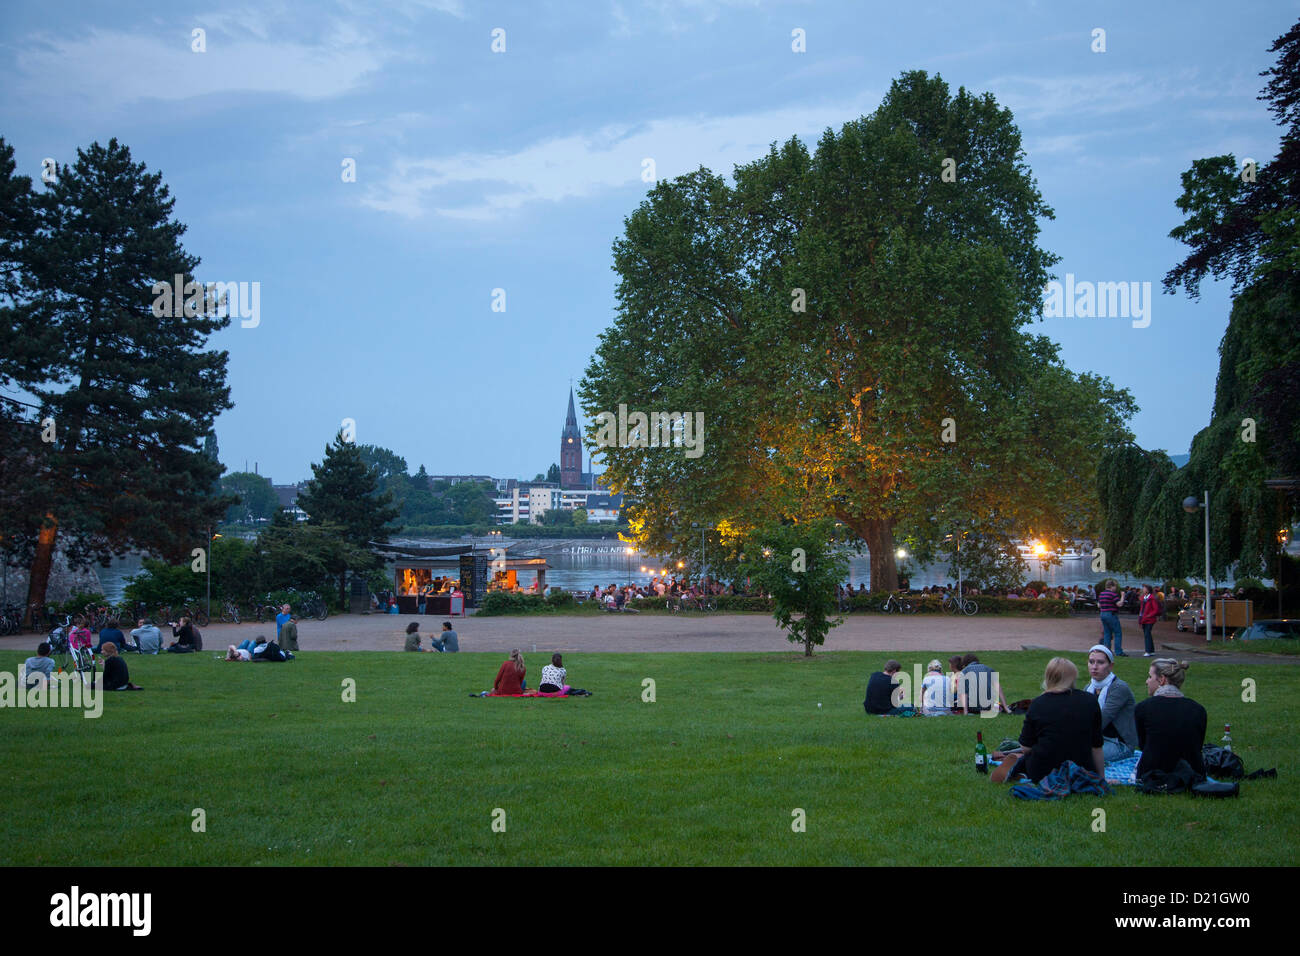 People sitting on the lawn underneath giant plantain tree at Alter Zoll beer garden in the evening, Bonn, North - Stock Image